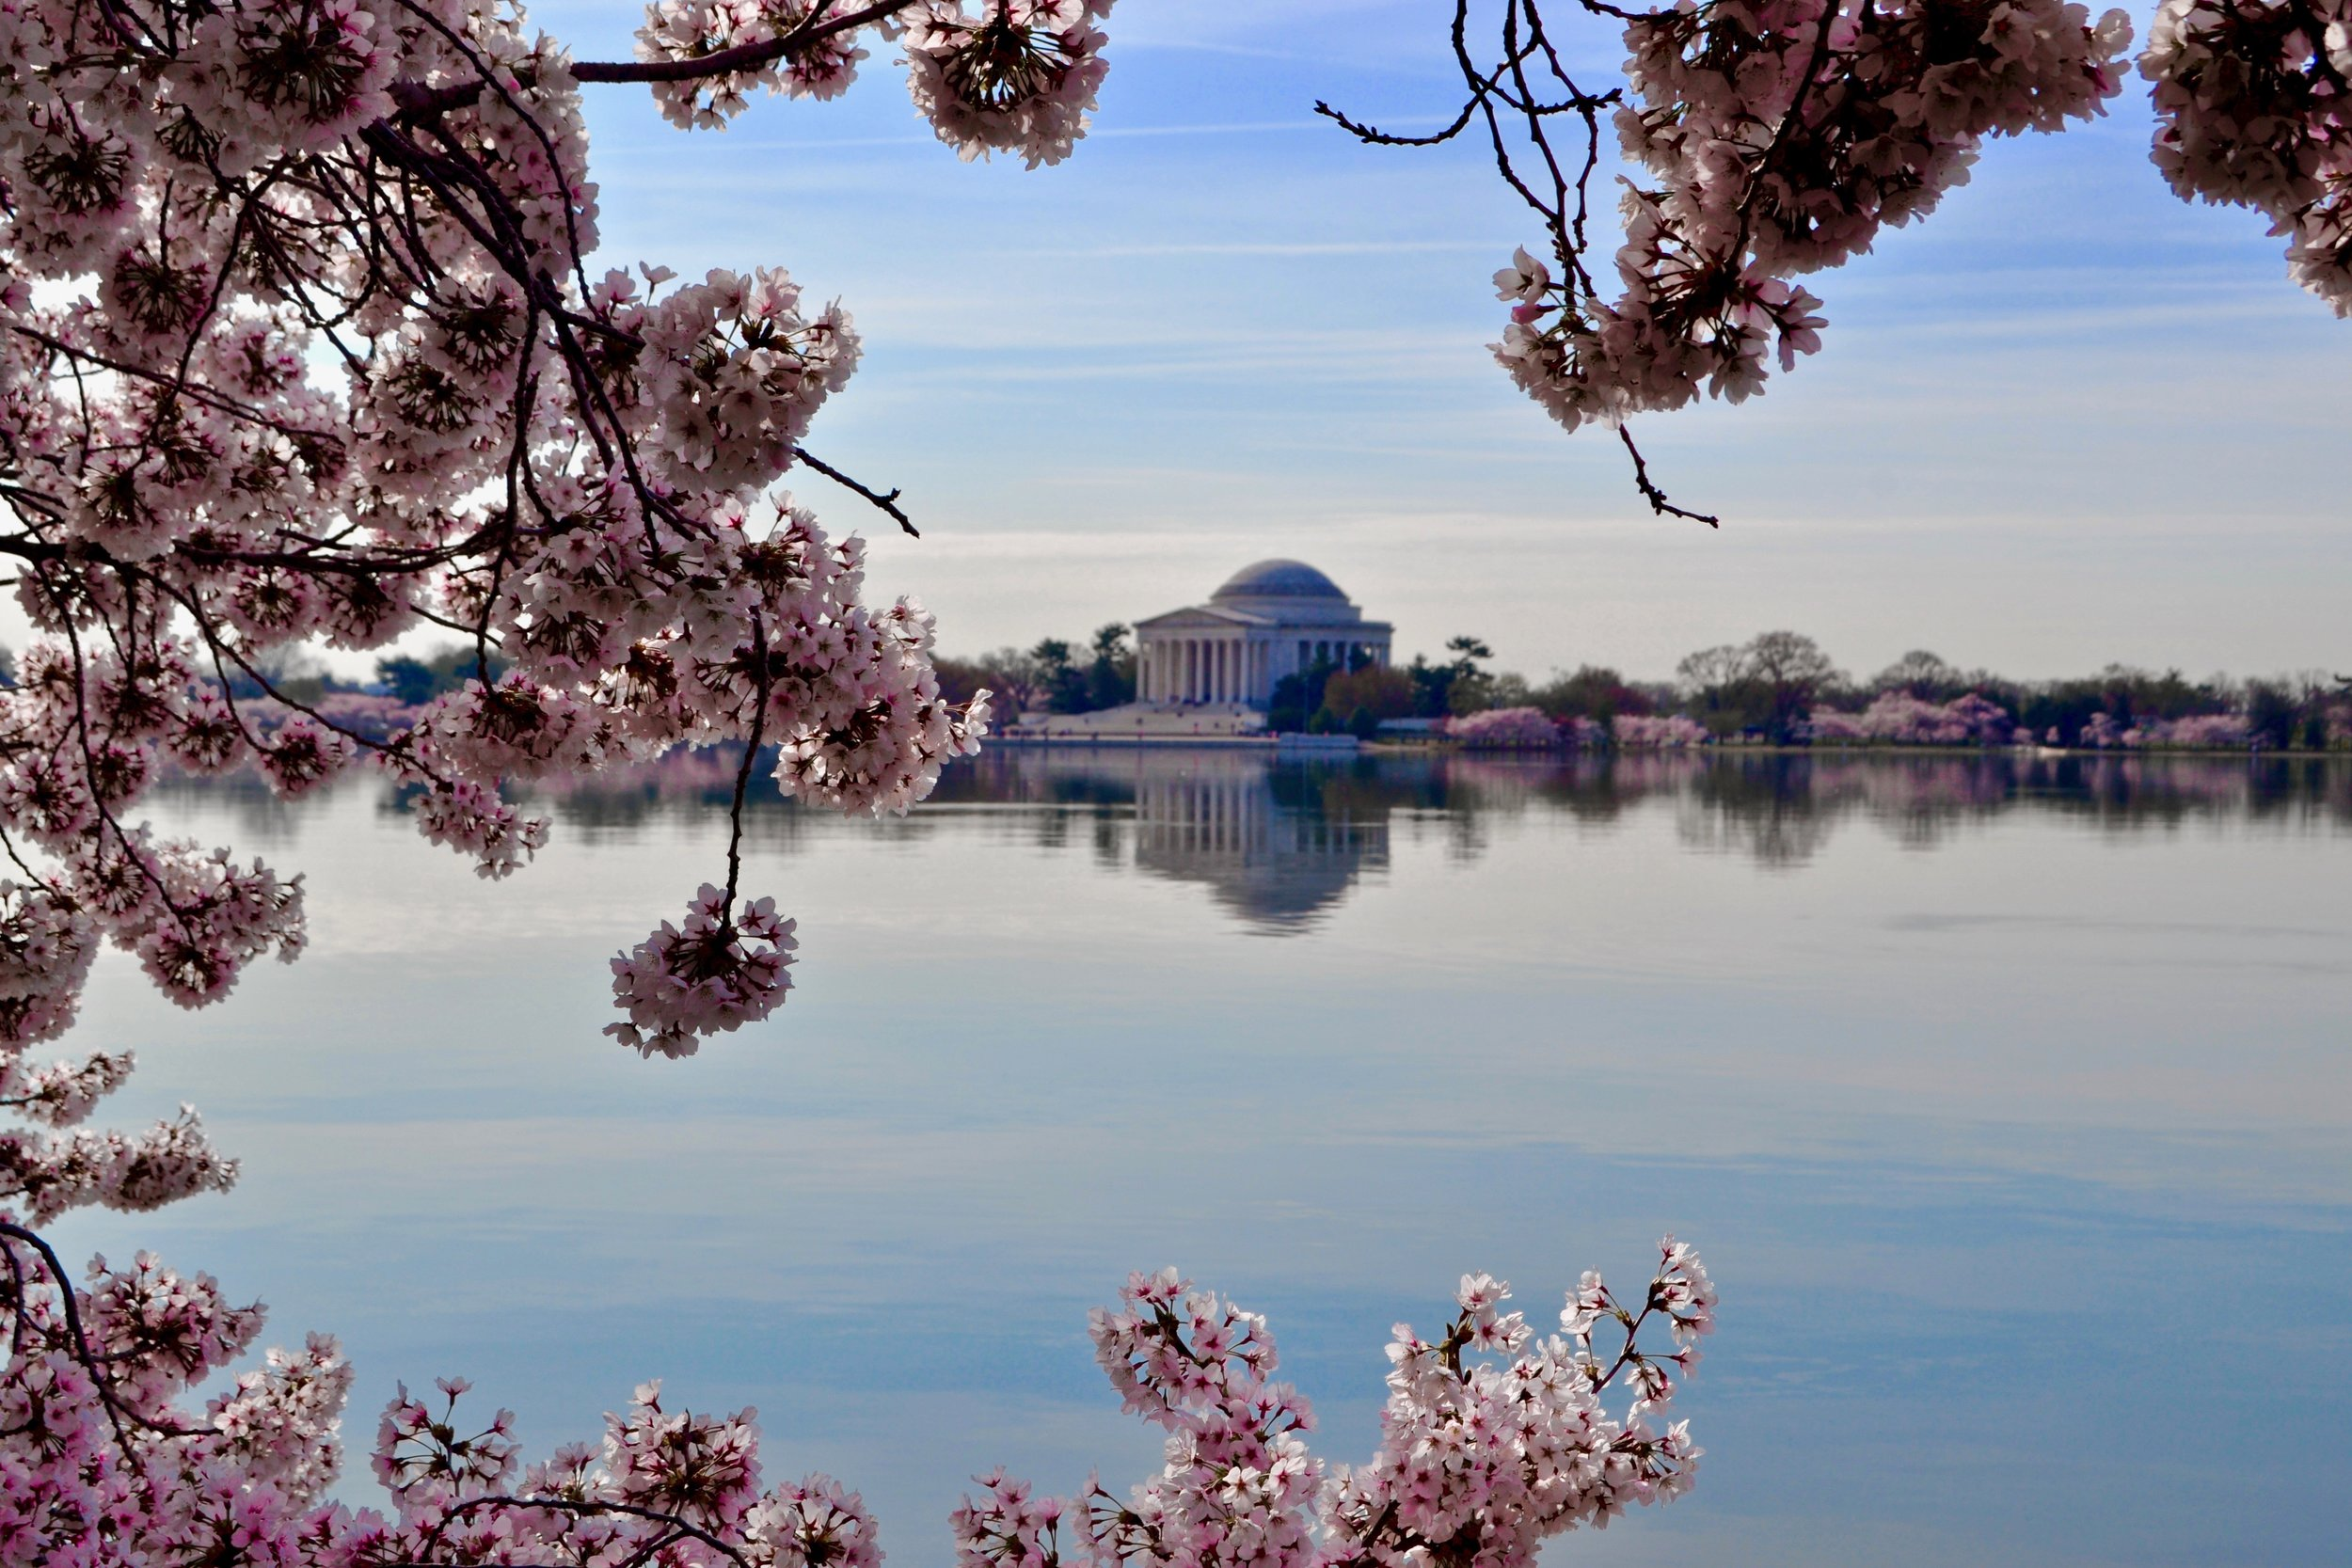 Washington, dc & dmv area - Welcome to the DMV area! DC, Maryland and Virginia. Besides the politics and monuments, step into creative & museum hub of the DMV . Bar crawls, festivals aplenty and r&b sets.